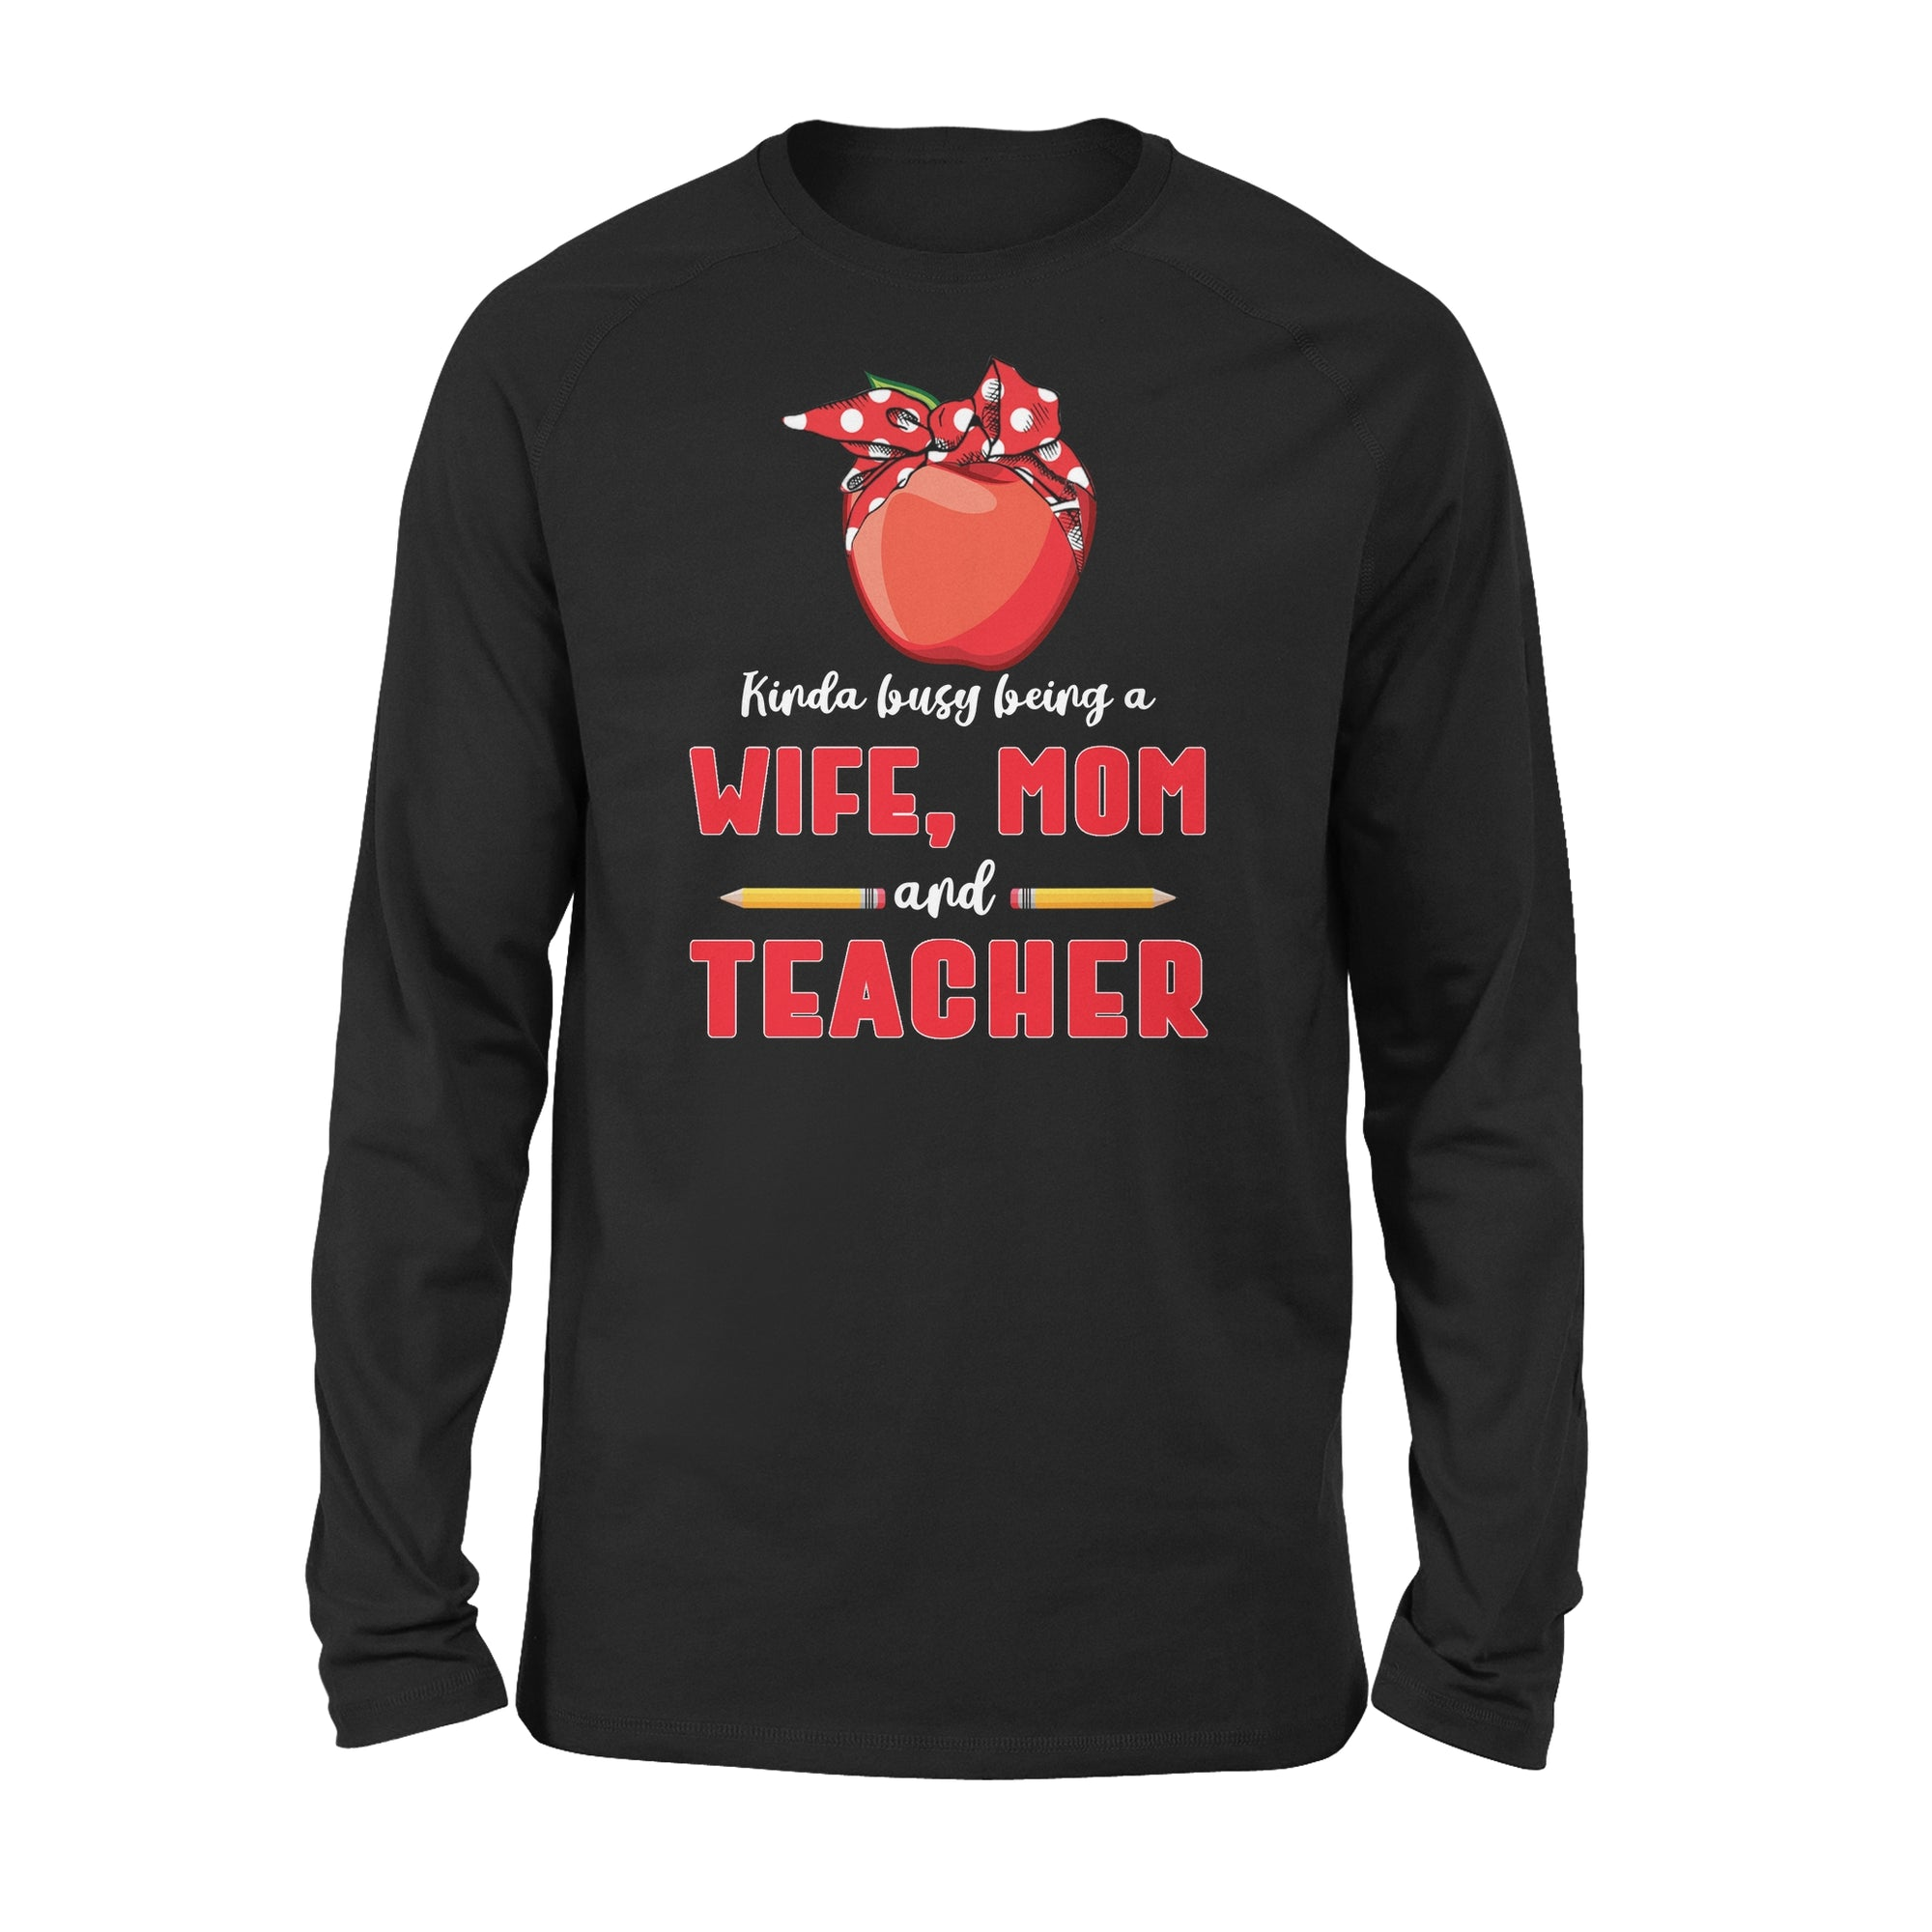 VIRA Premium Long Sleeve for awesome teachers & moms